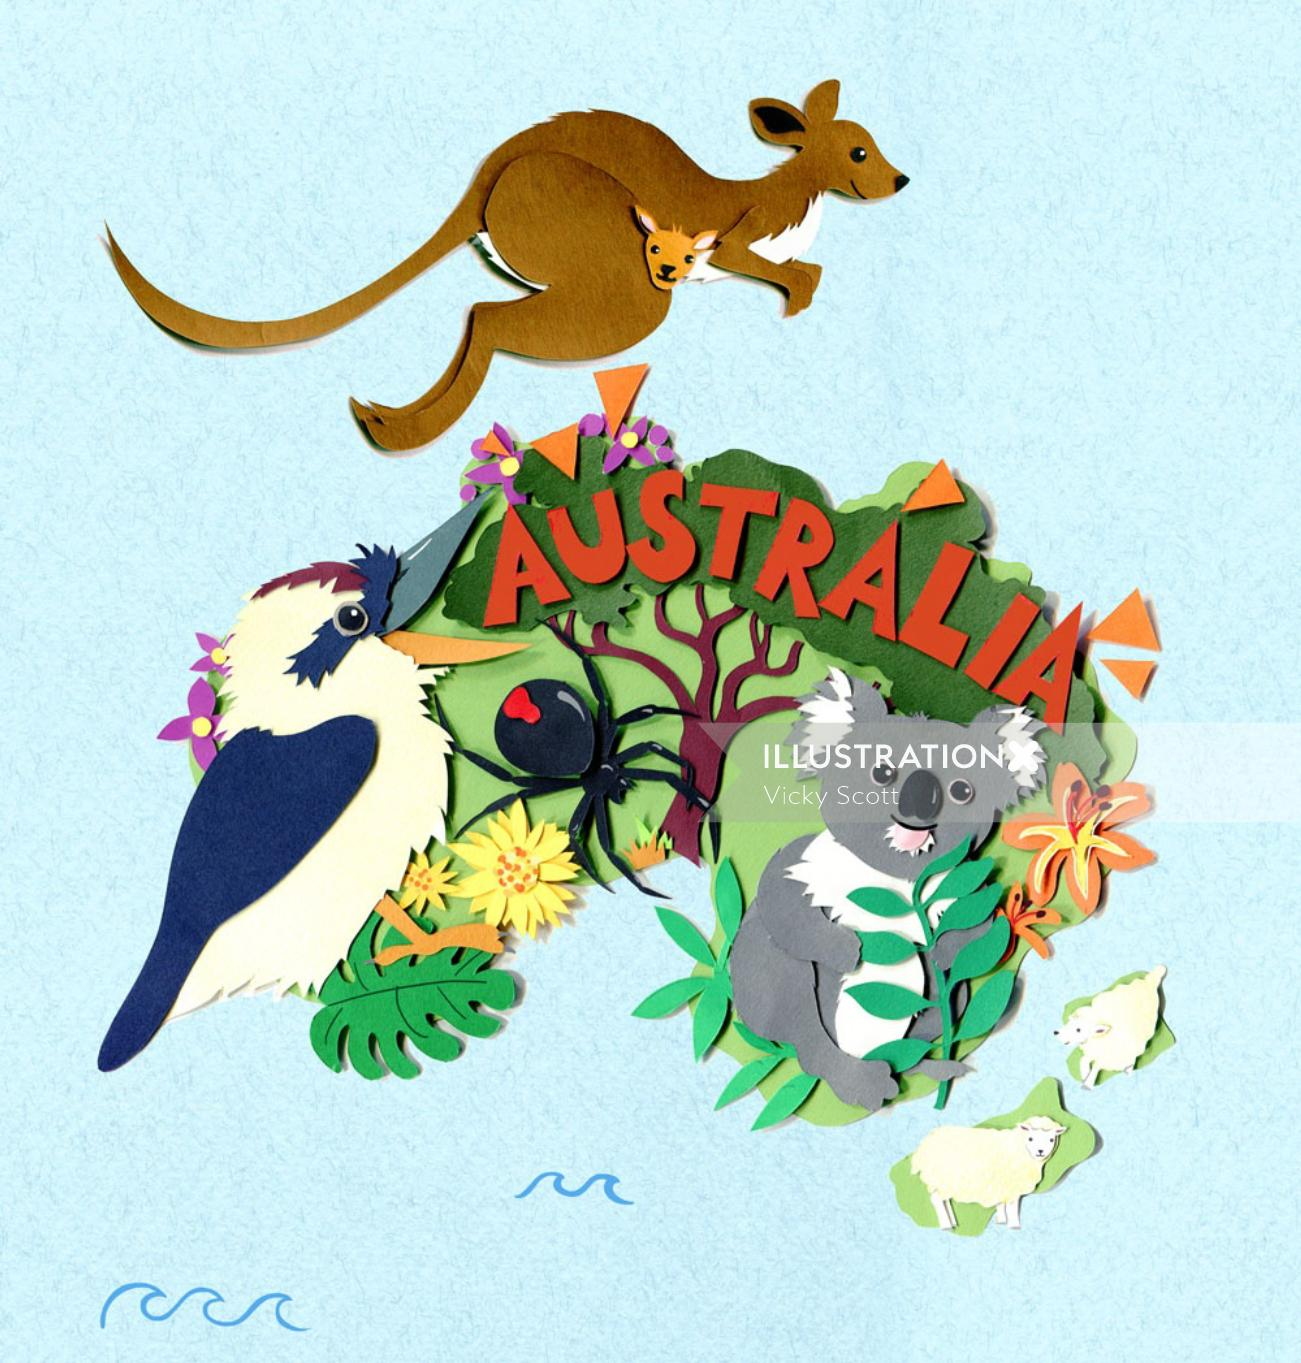 map, australia, kangaroo, koala, spider, collage, sheep, nature,